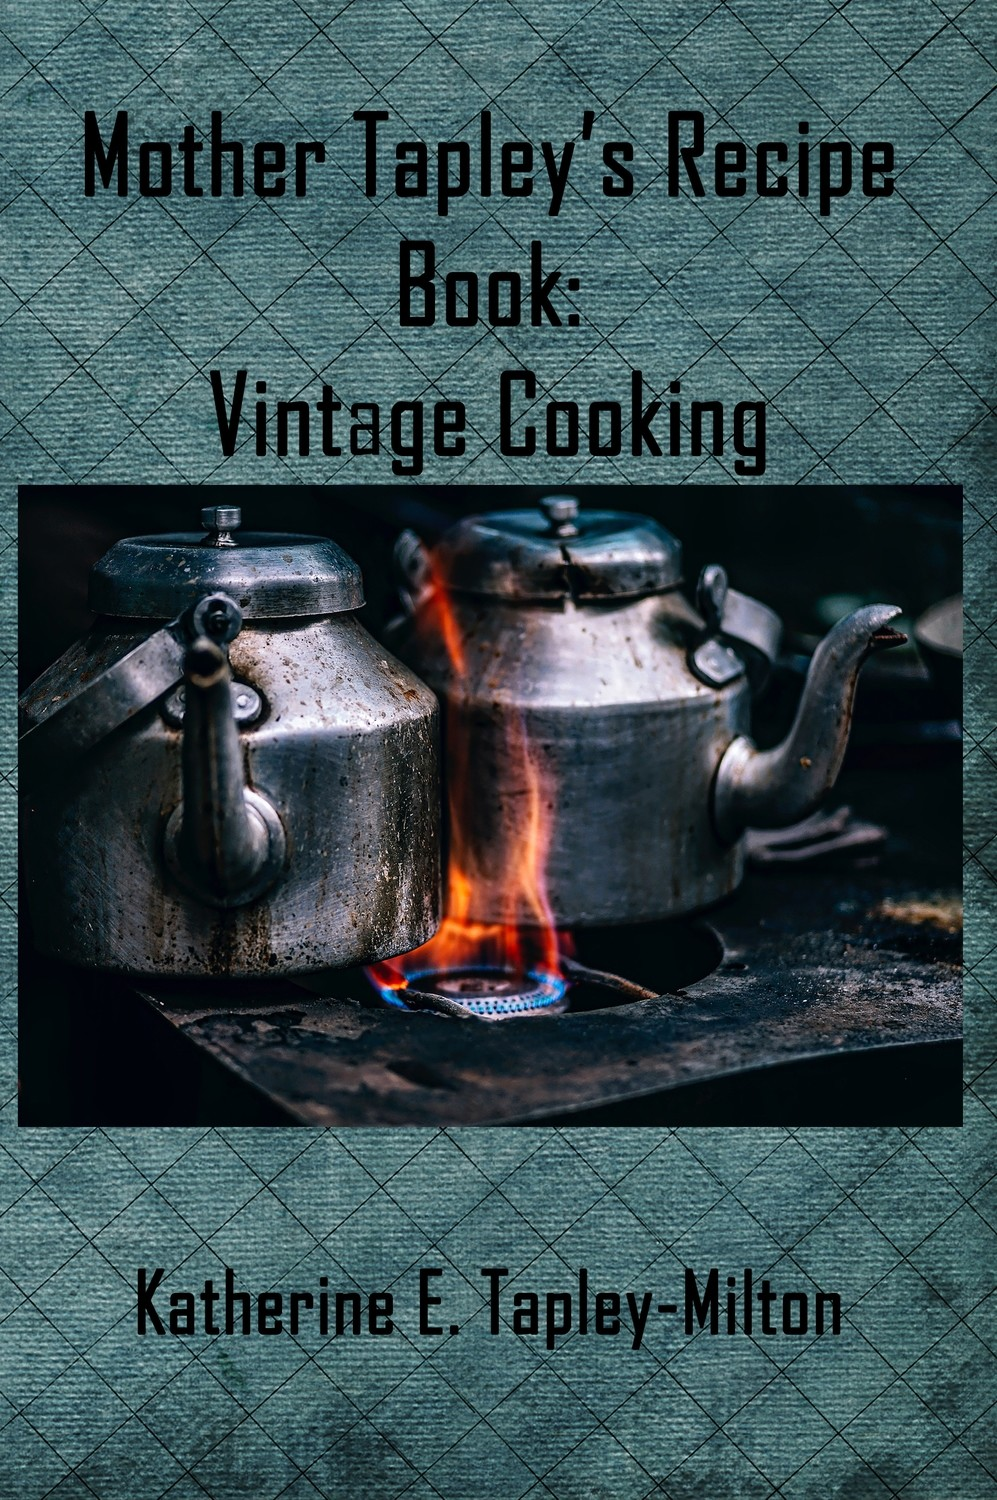 Mother Tapley's Recipe Book: Vintage Cooking